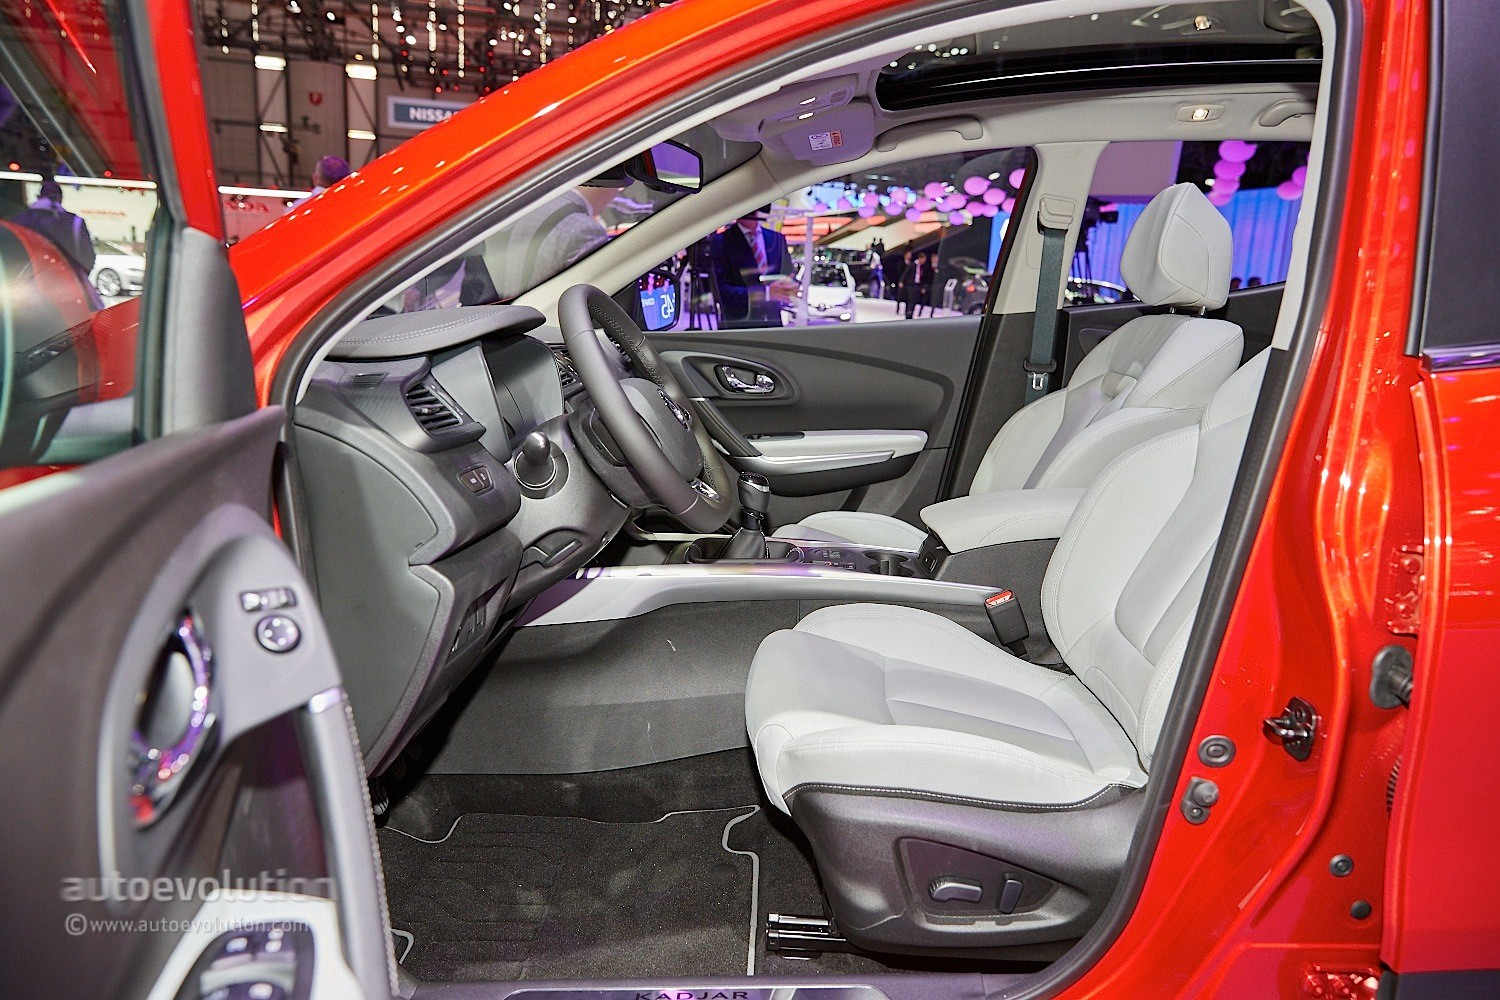 Renault Kadjar Crossover Shows Disappointing Interior at Geneva 2015 - Video, Live Photos ...